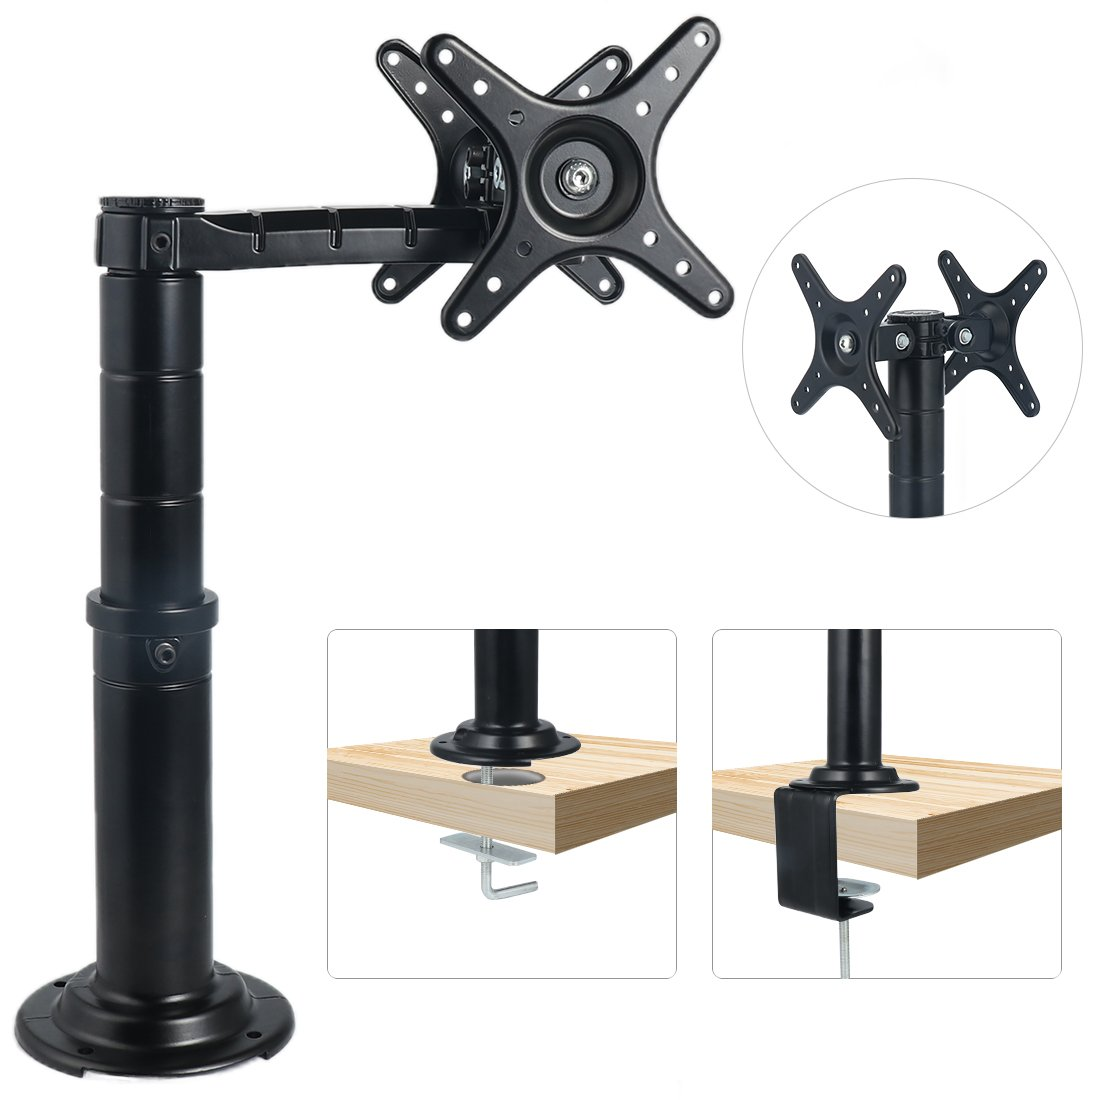 LOUTY Dual LCD Monitor Mount Stand Full Adjustable Fits Two Screens up to 27 inch.